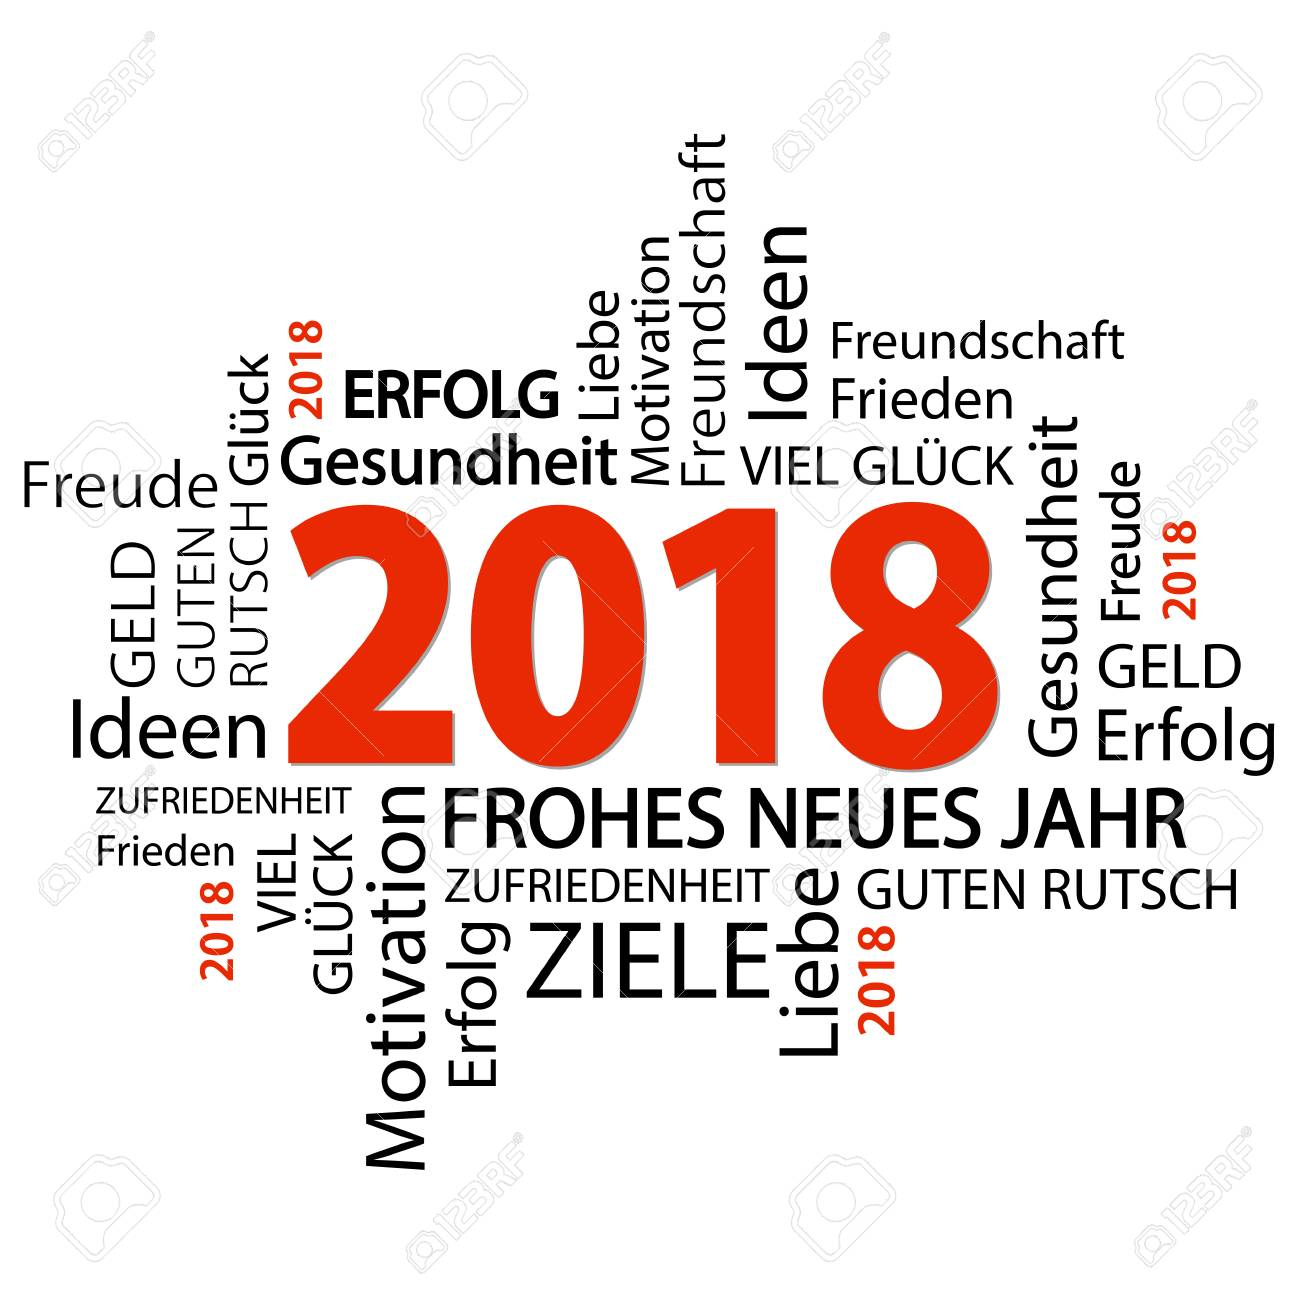 Word Cloud With New Year 2018 Greetings And White Background Royalty